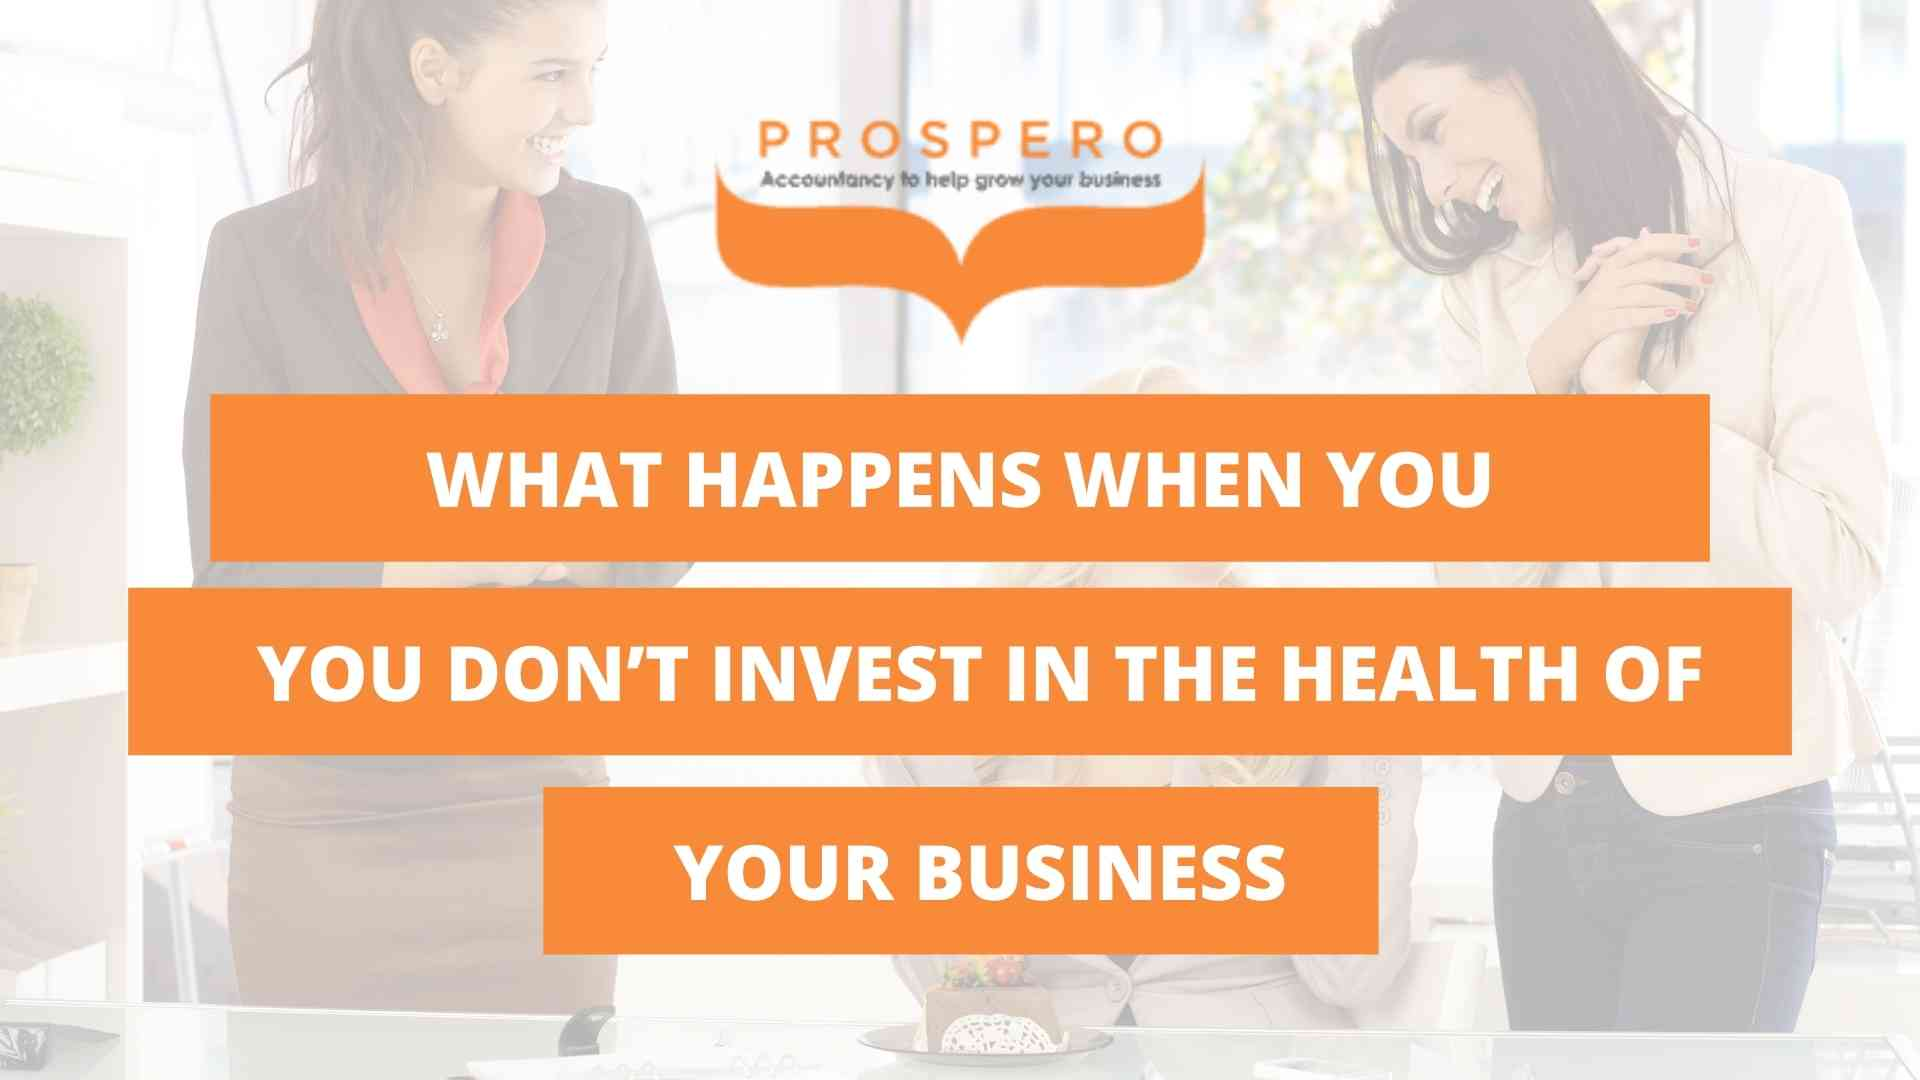 Business Bitesize - What happens when you don't invest in the health of your business